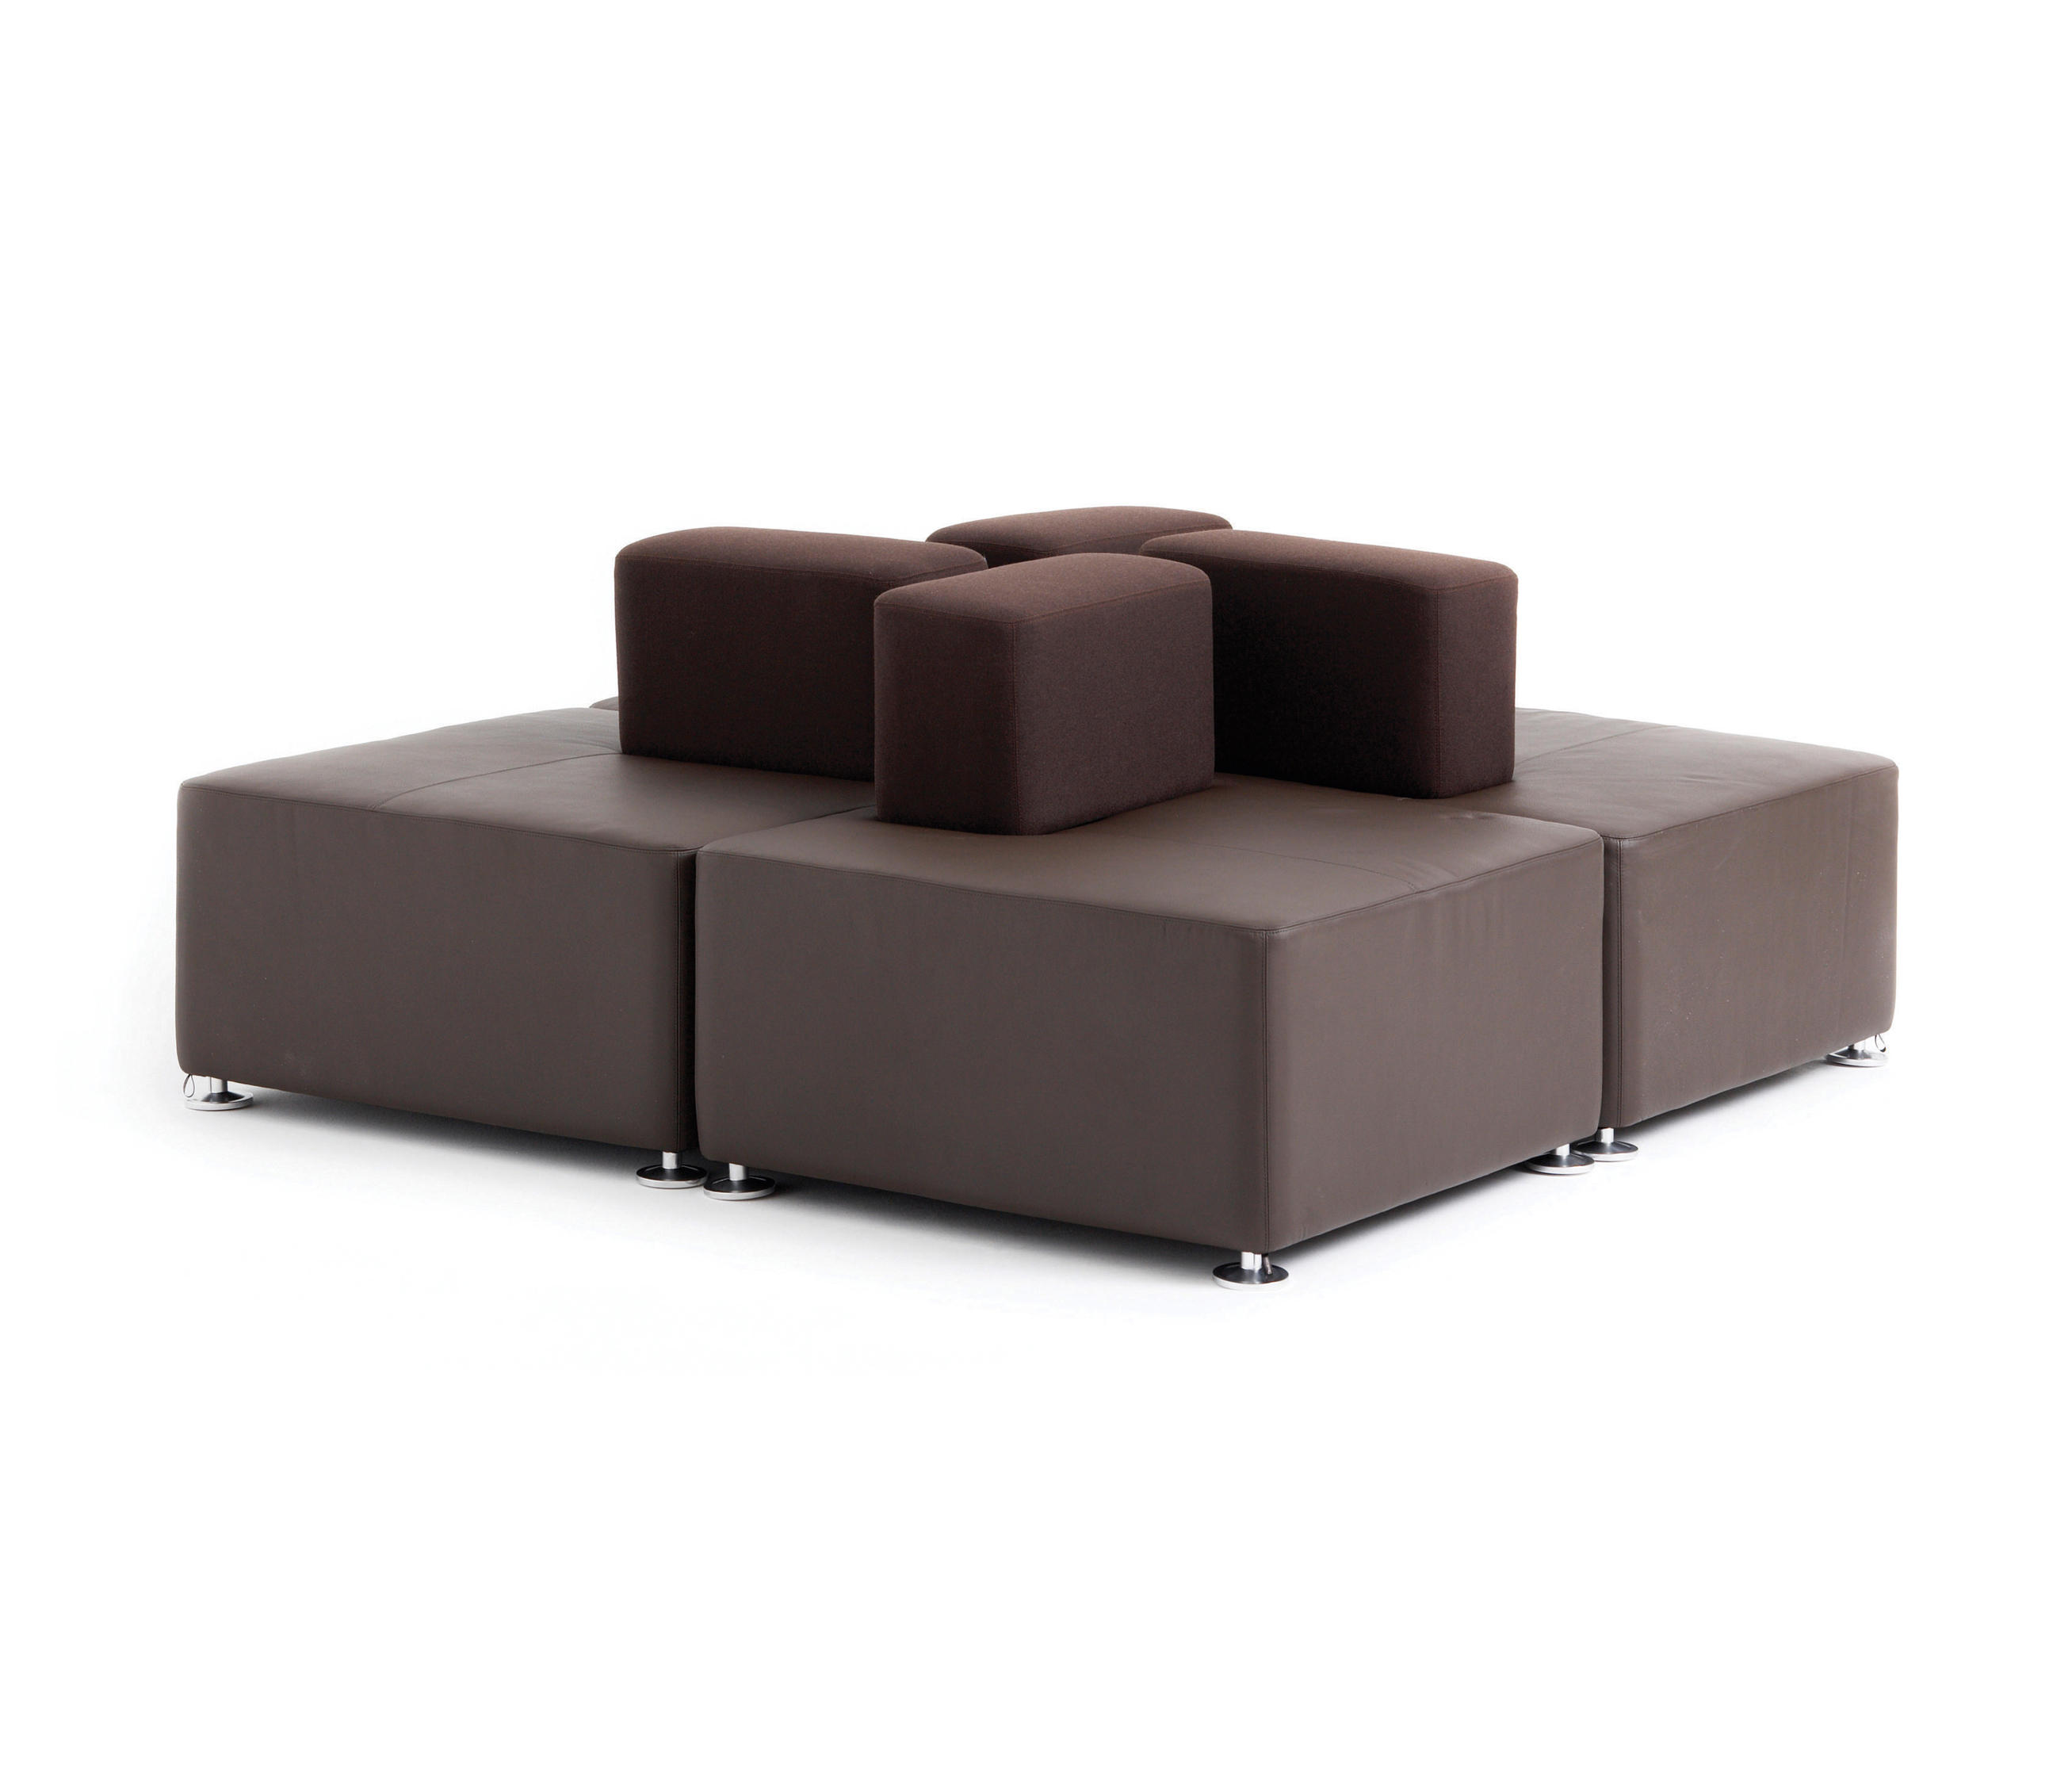 b free lounge modular seating elements from steelcase. Black Bedroom Furniture Sets. Home Design Ideas